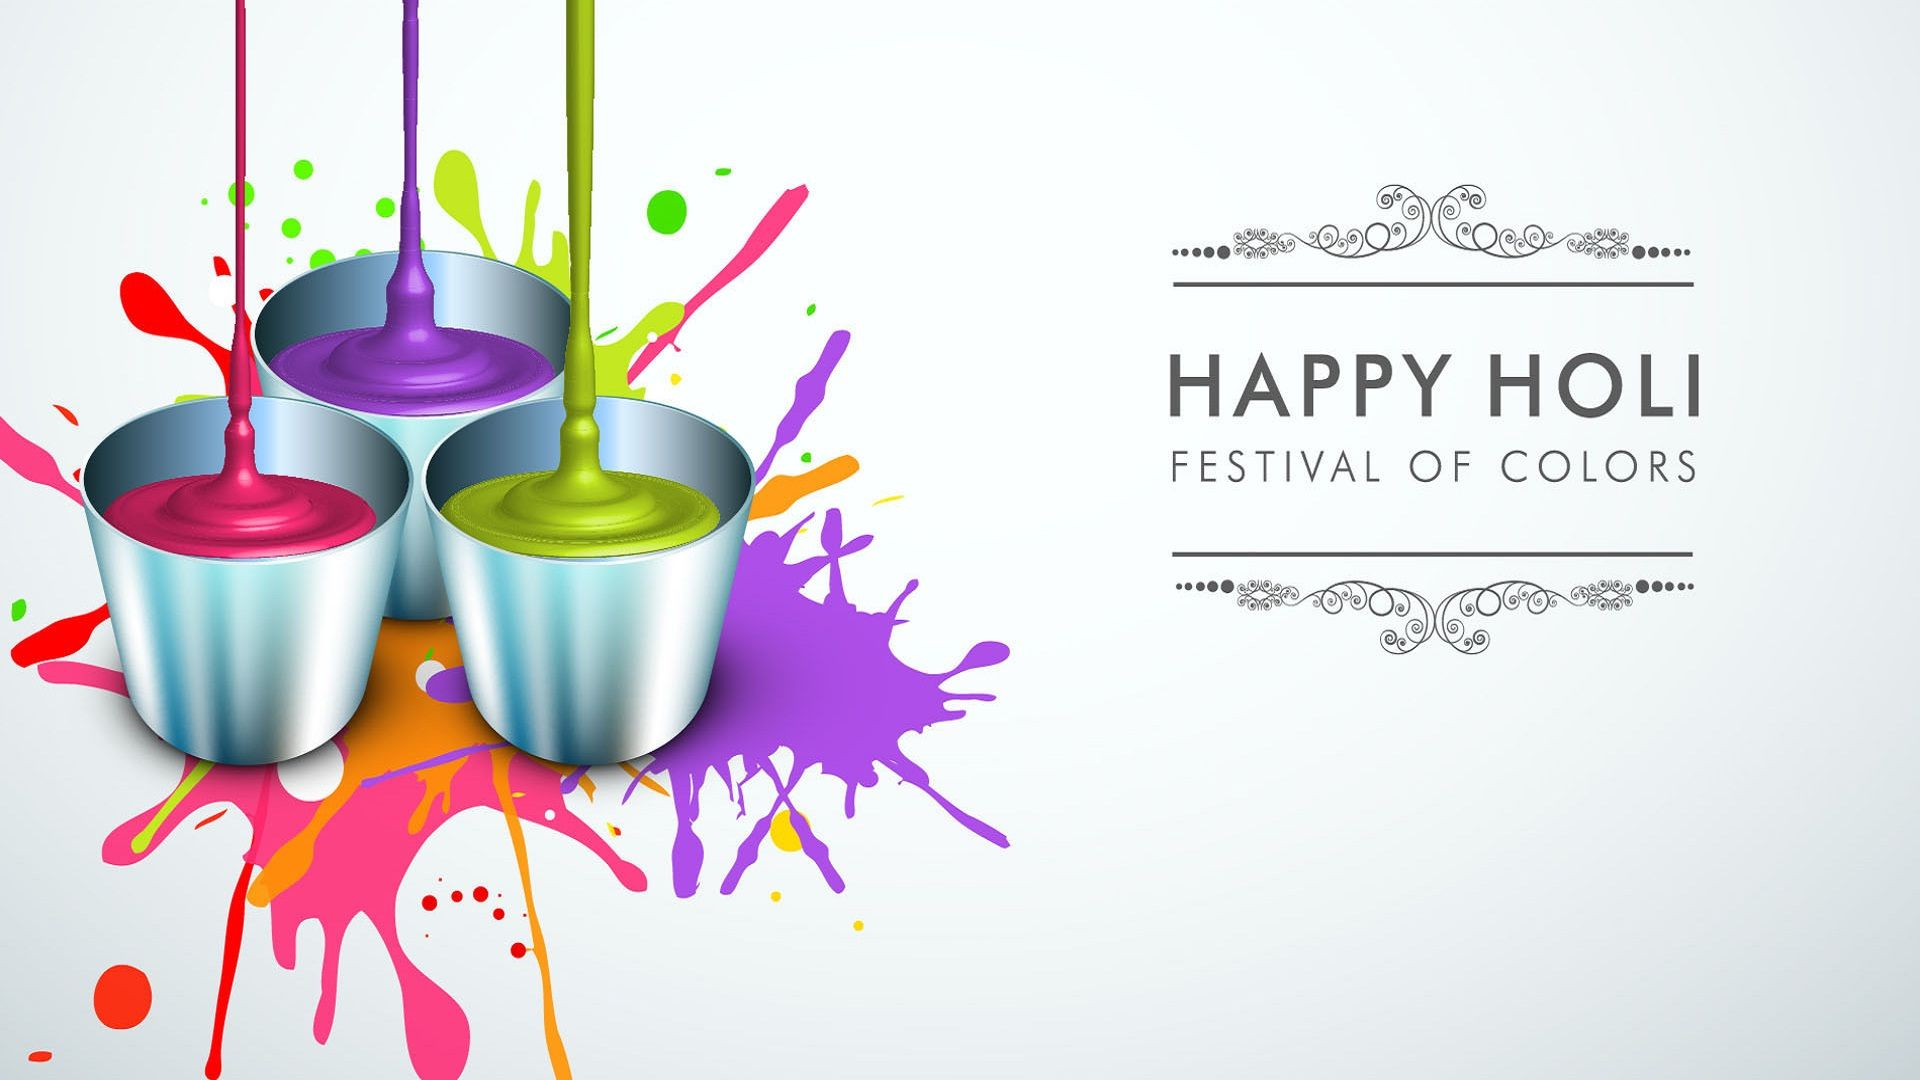 Pin By Mayank Pareek On High Resolution Wallpapers Happy Holi